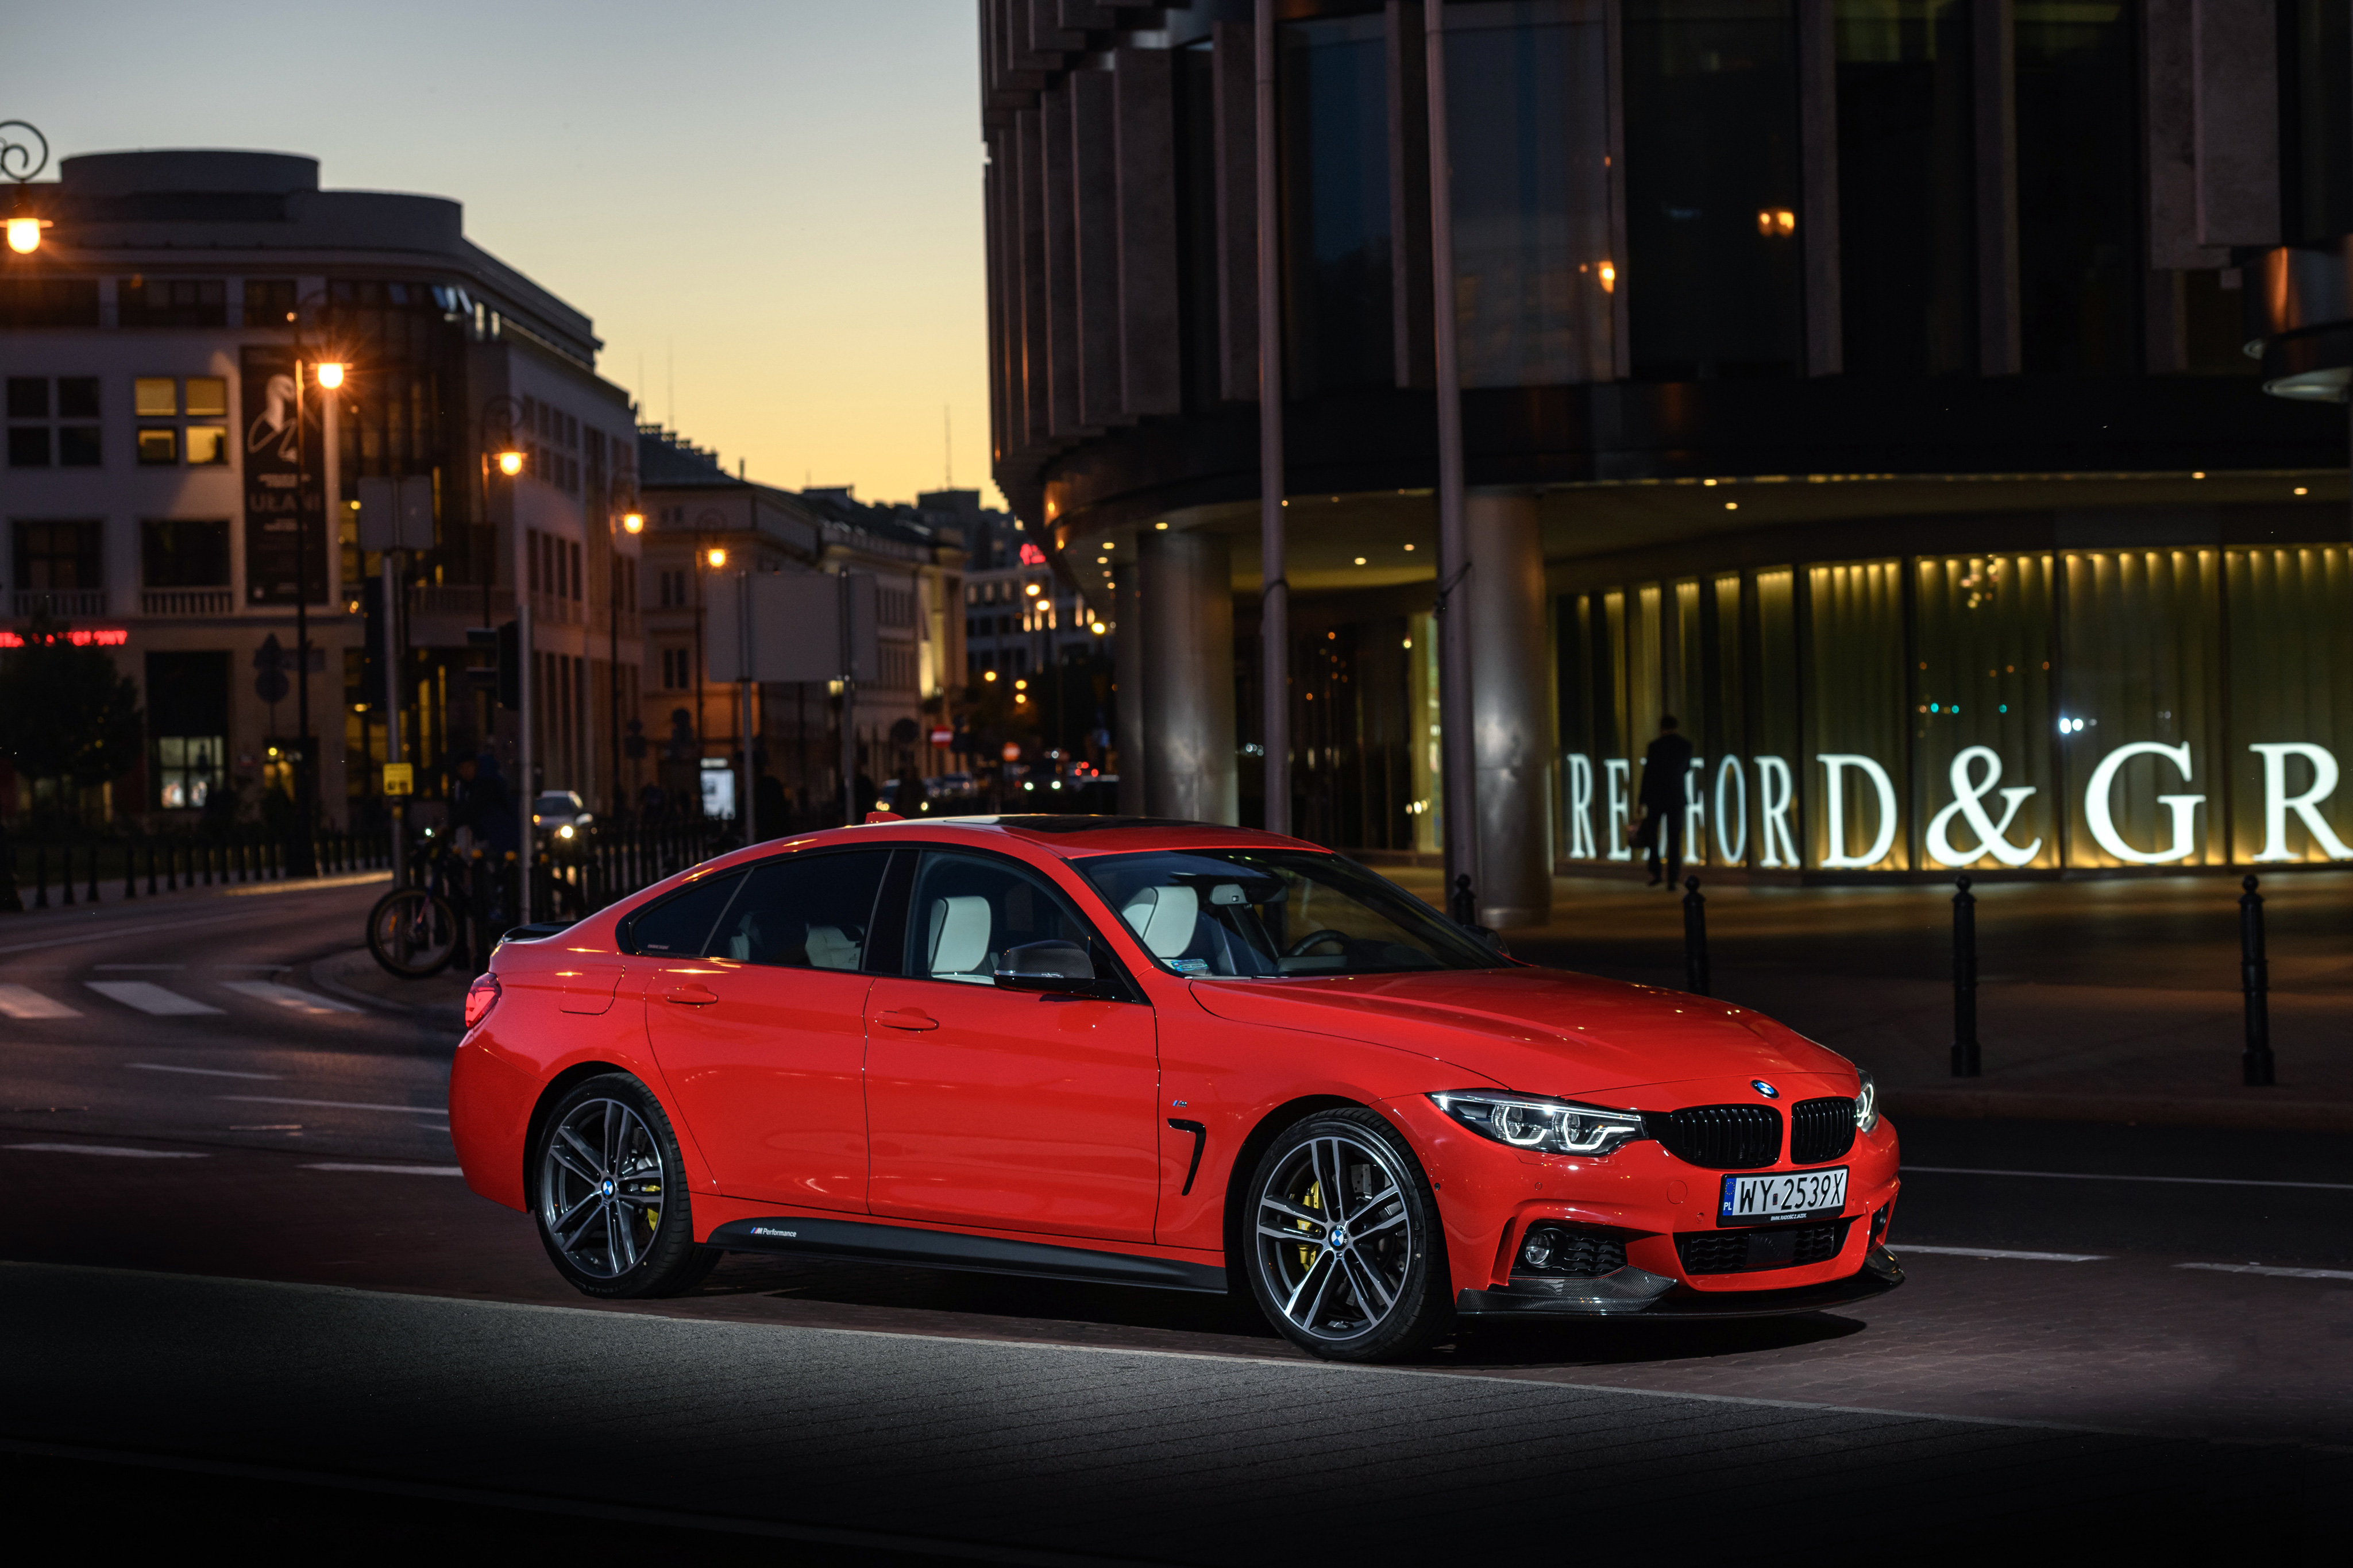 Bmw 430i Coupe >> BMW 430i Gran Coupe M Performance Parts 2018, HD Cars, 4k Wallpapers, Images, Backgrounds ...